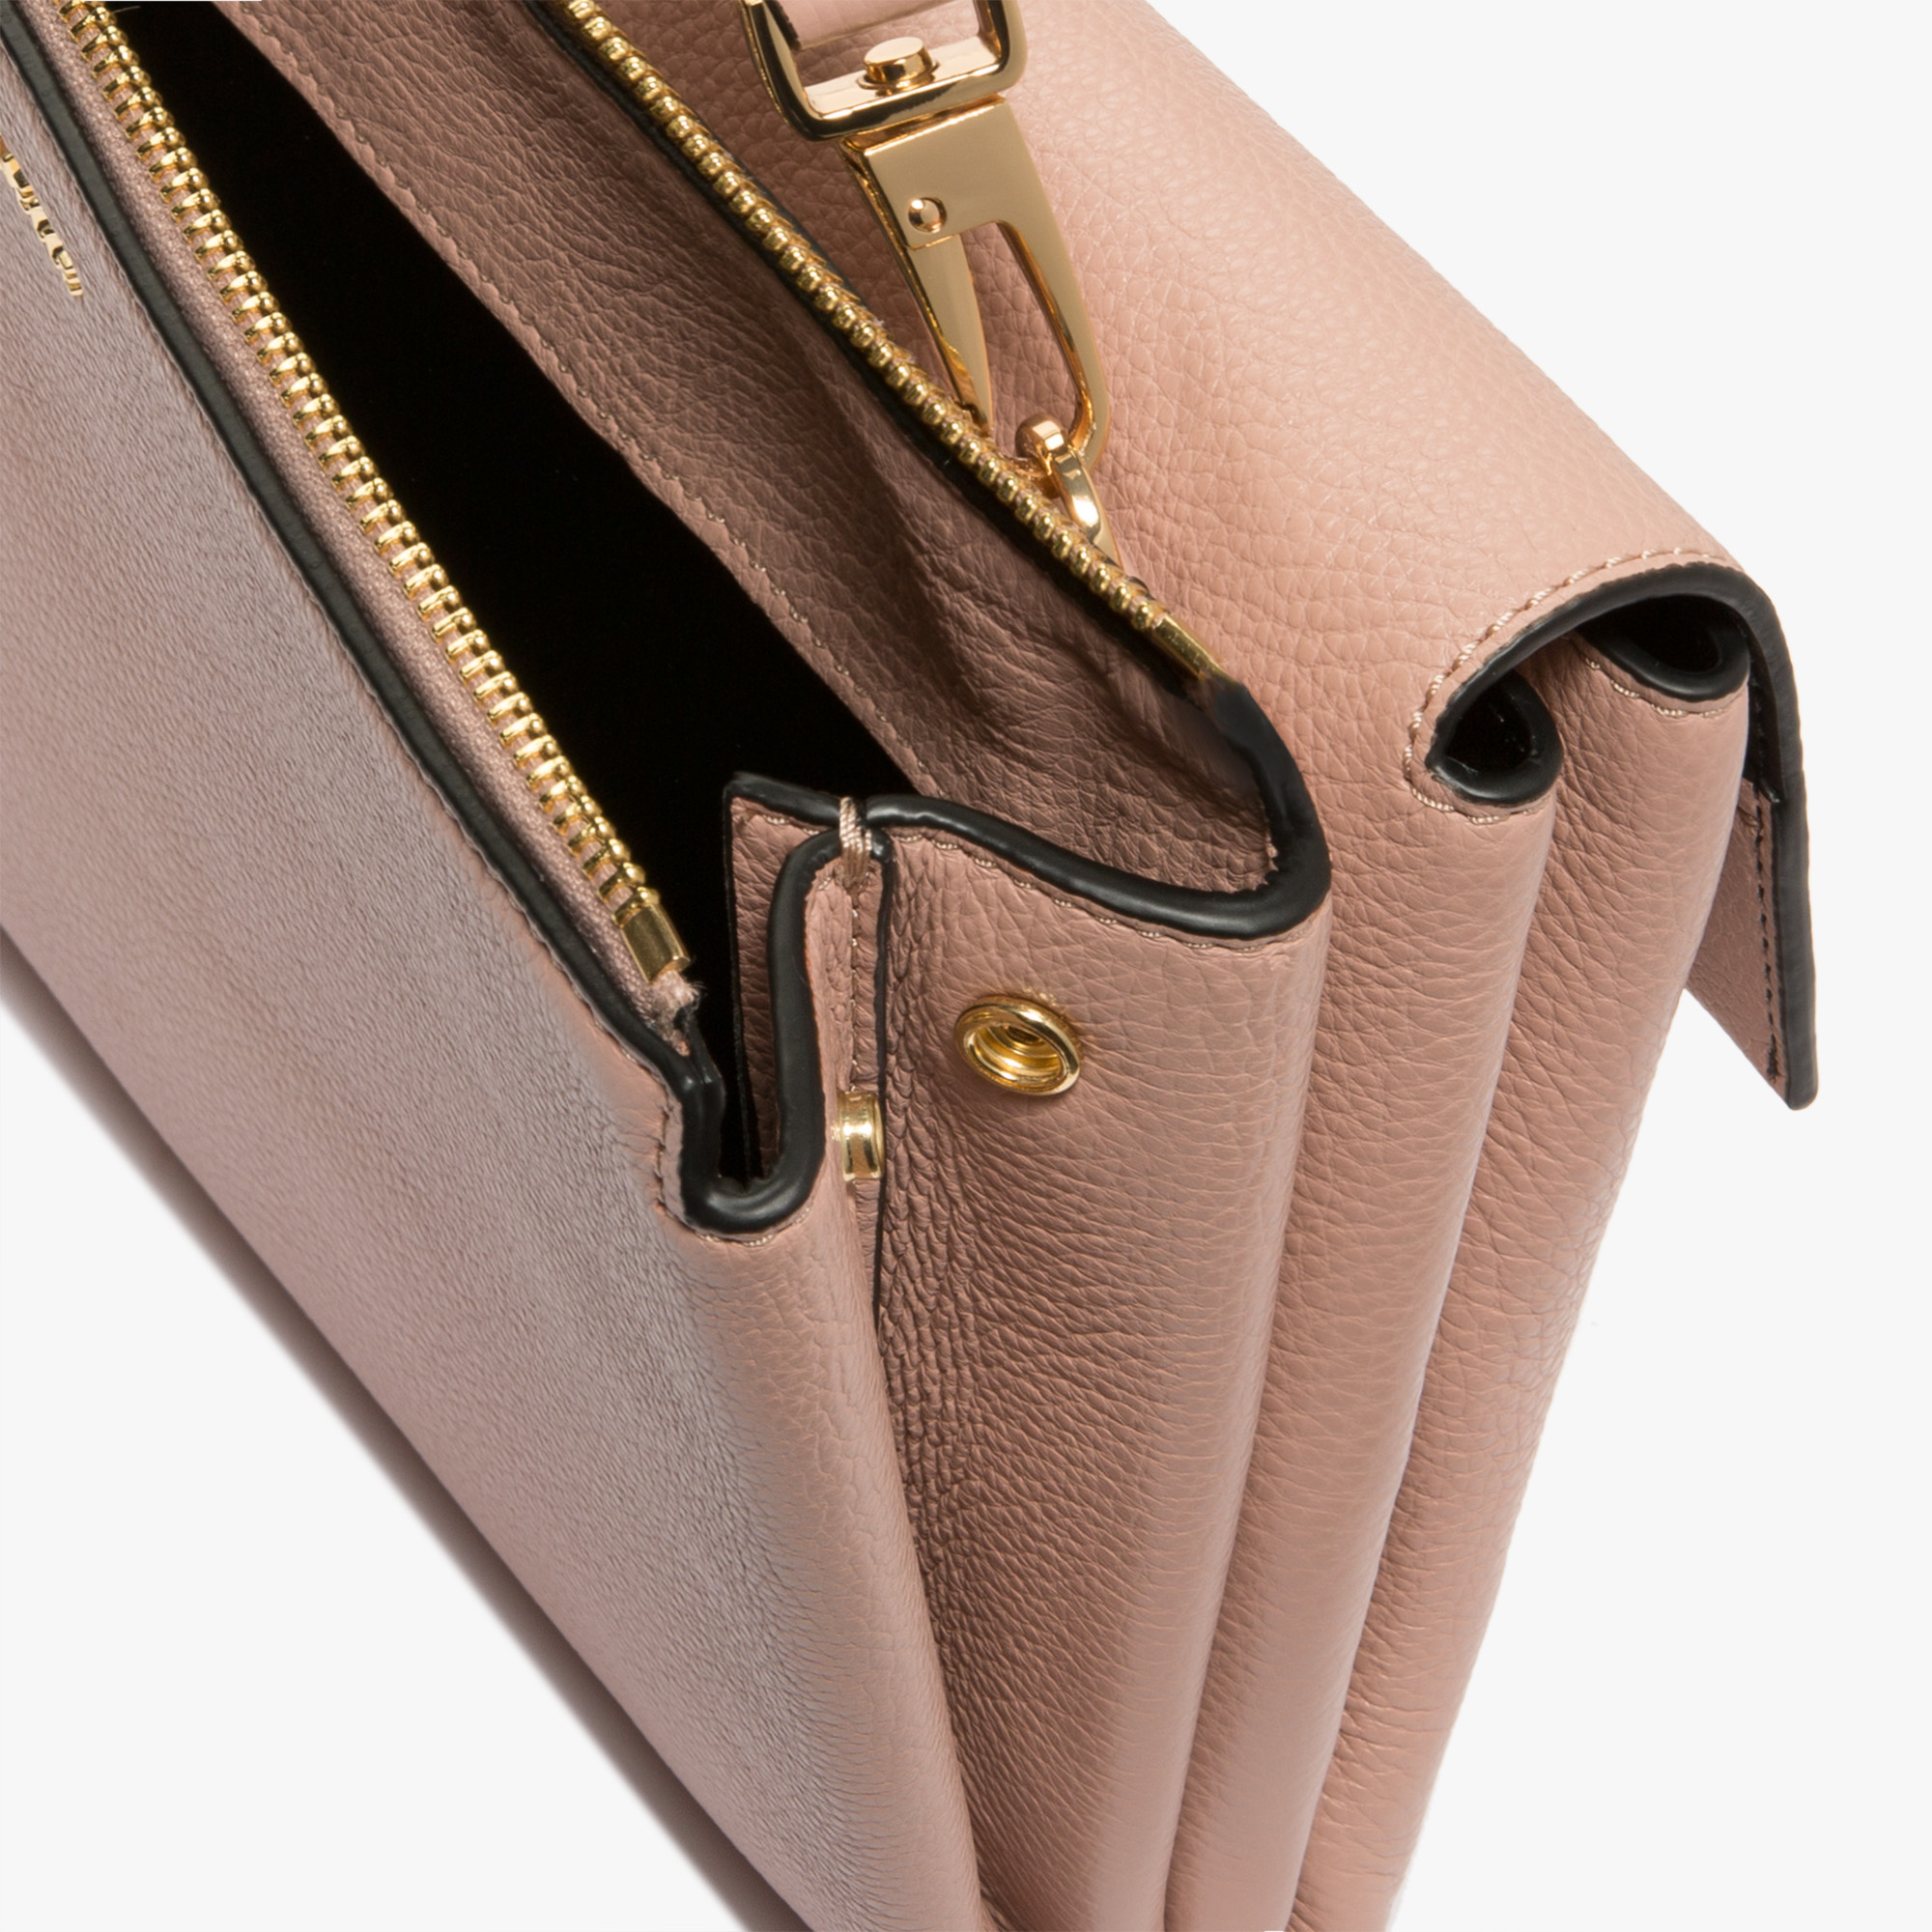 Coccinelle Arlettis leather bag with a single strap